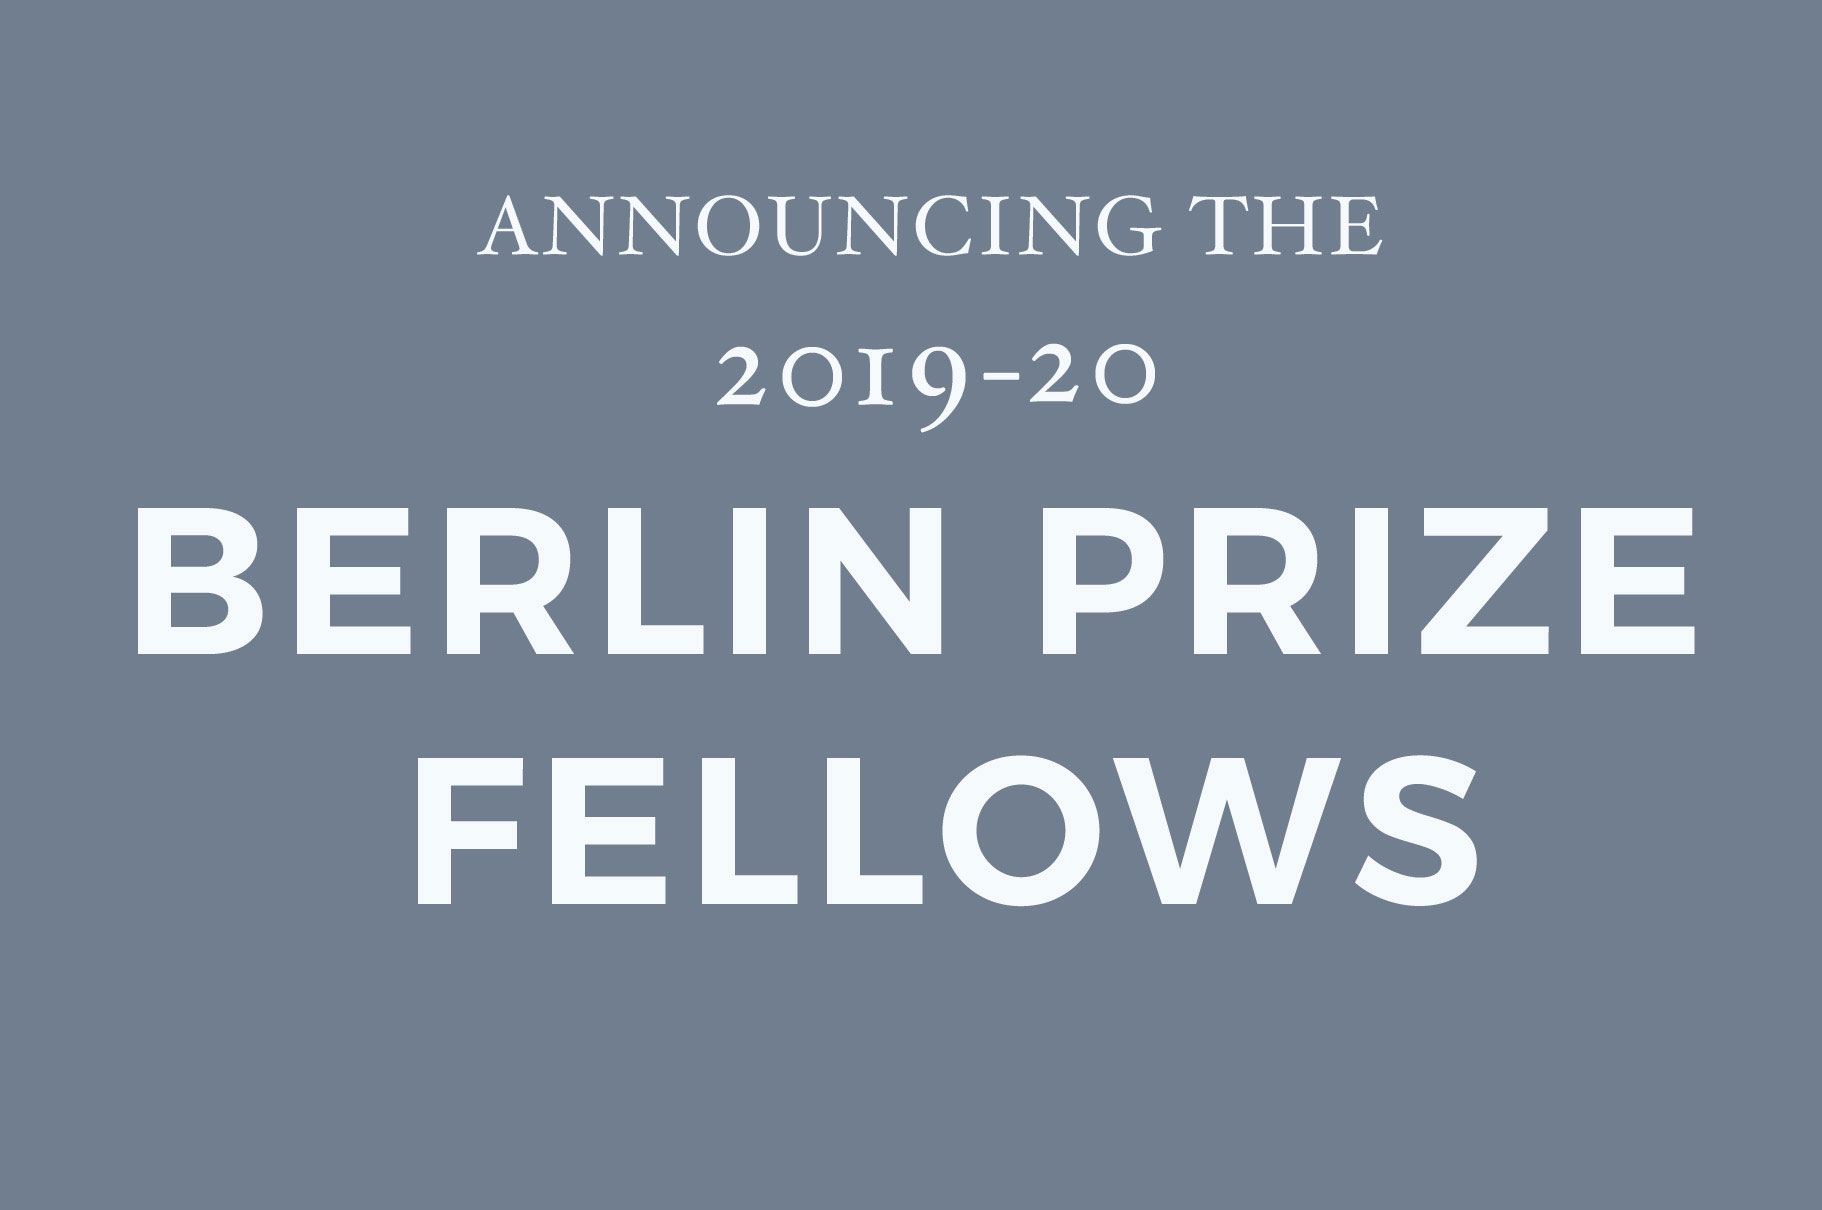 2019 20 Fellows